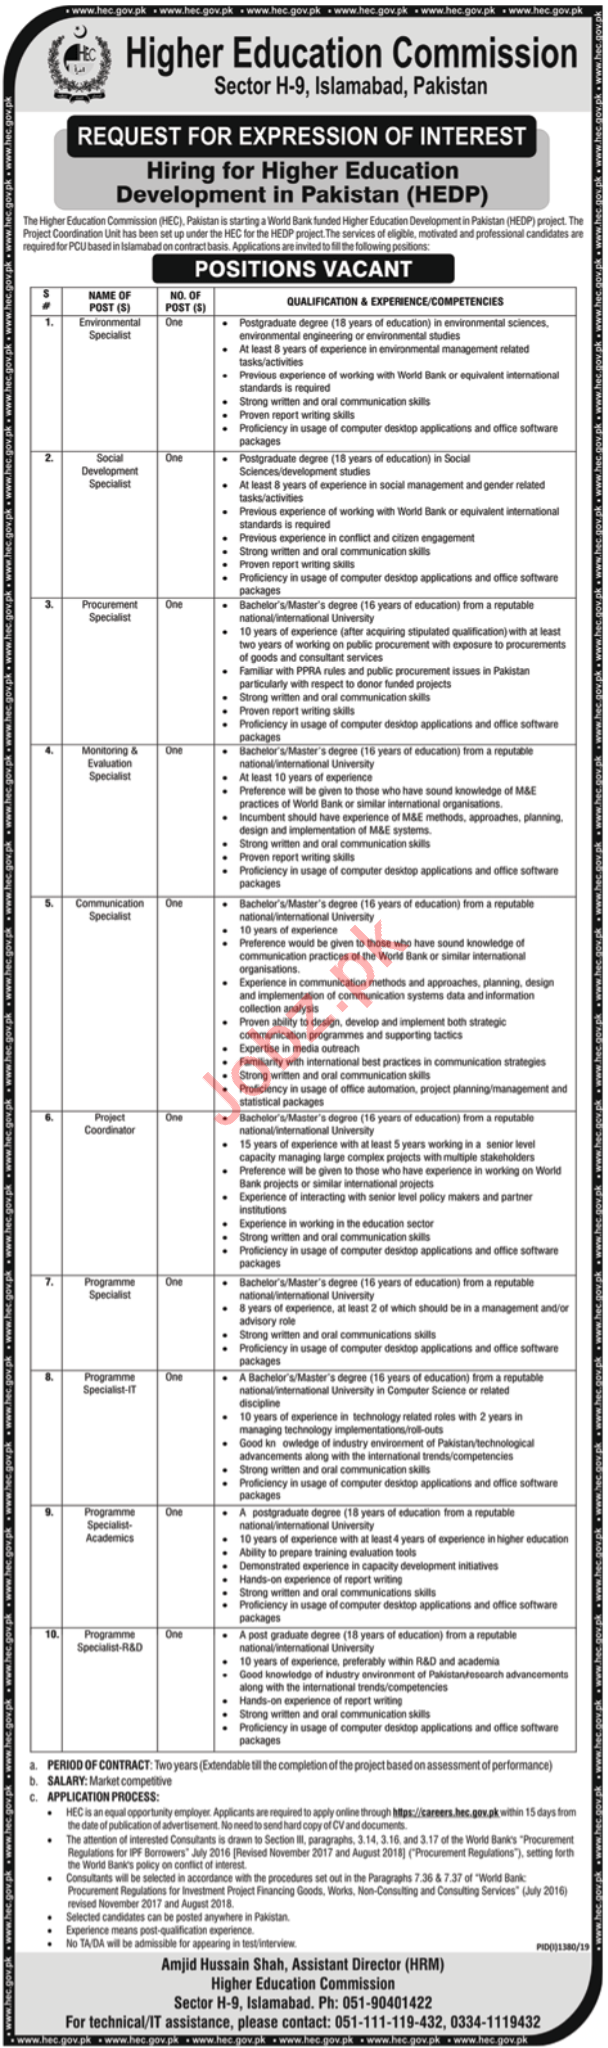 Higher Education Commission HEC Jobs 2019 For Islamabad